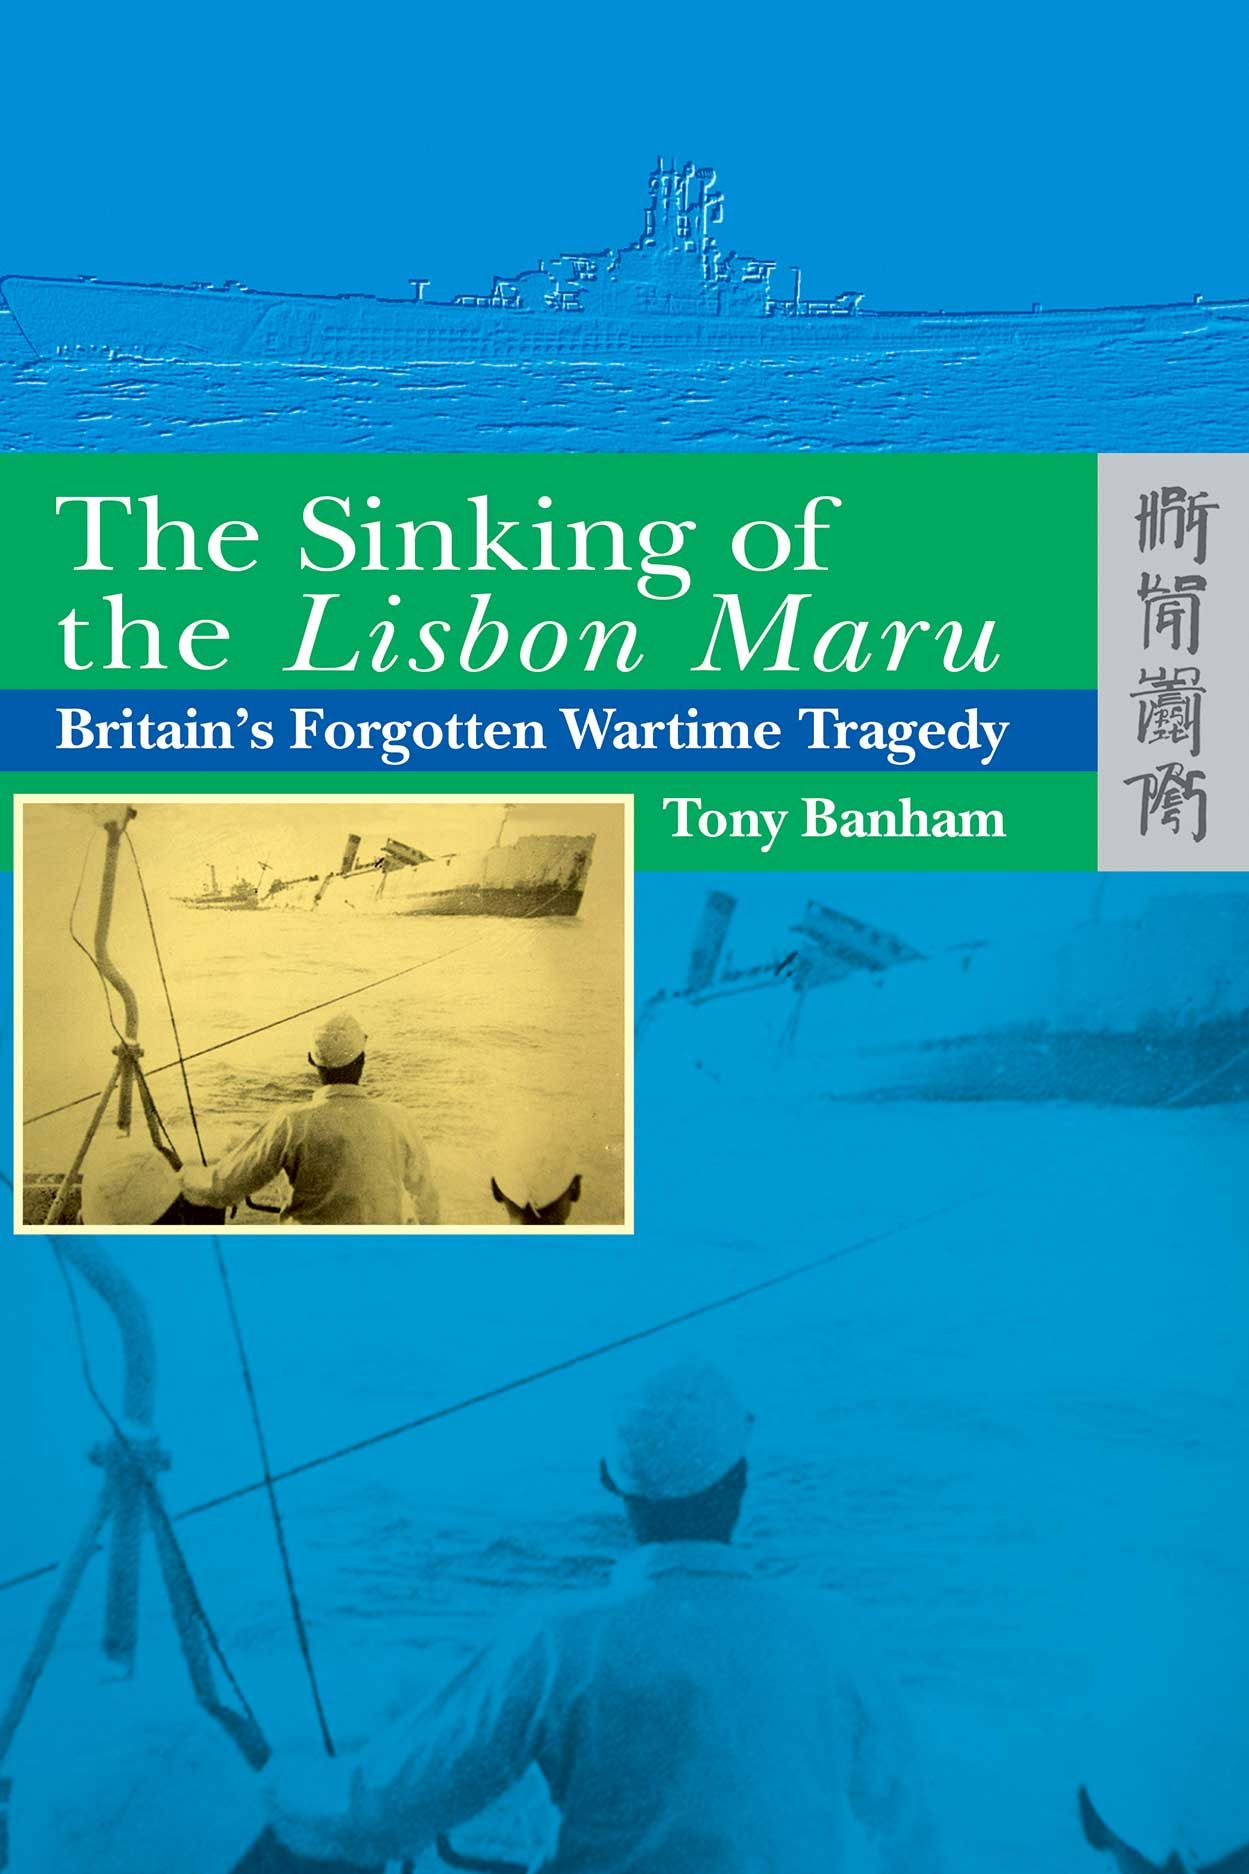 The Sinking of the Lisbon Maru